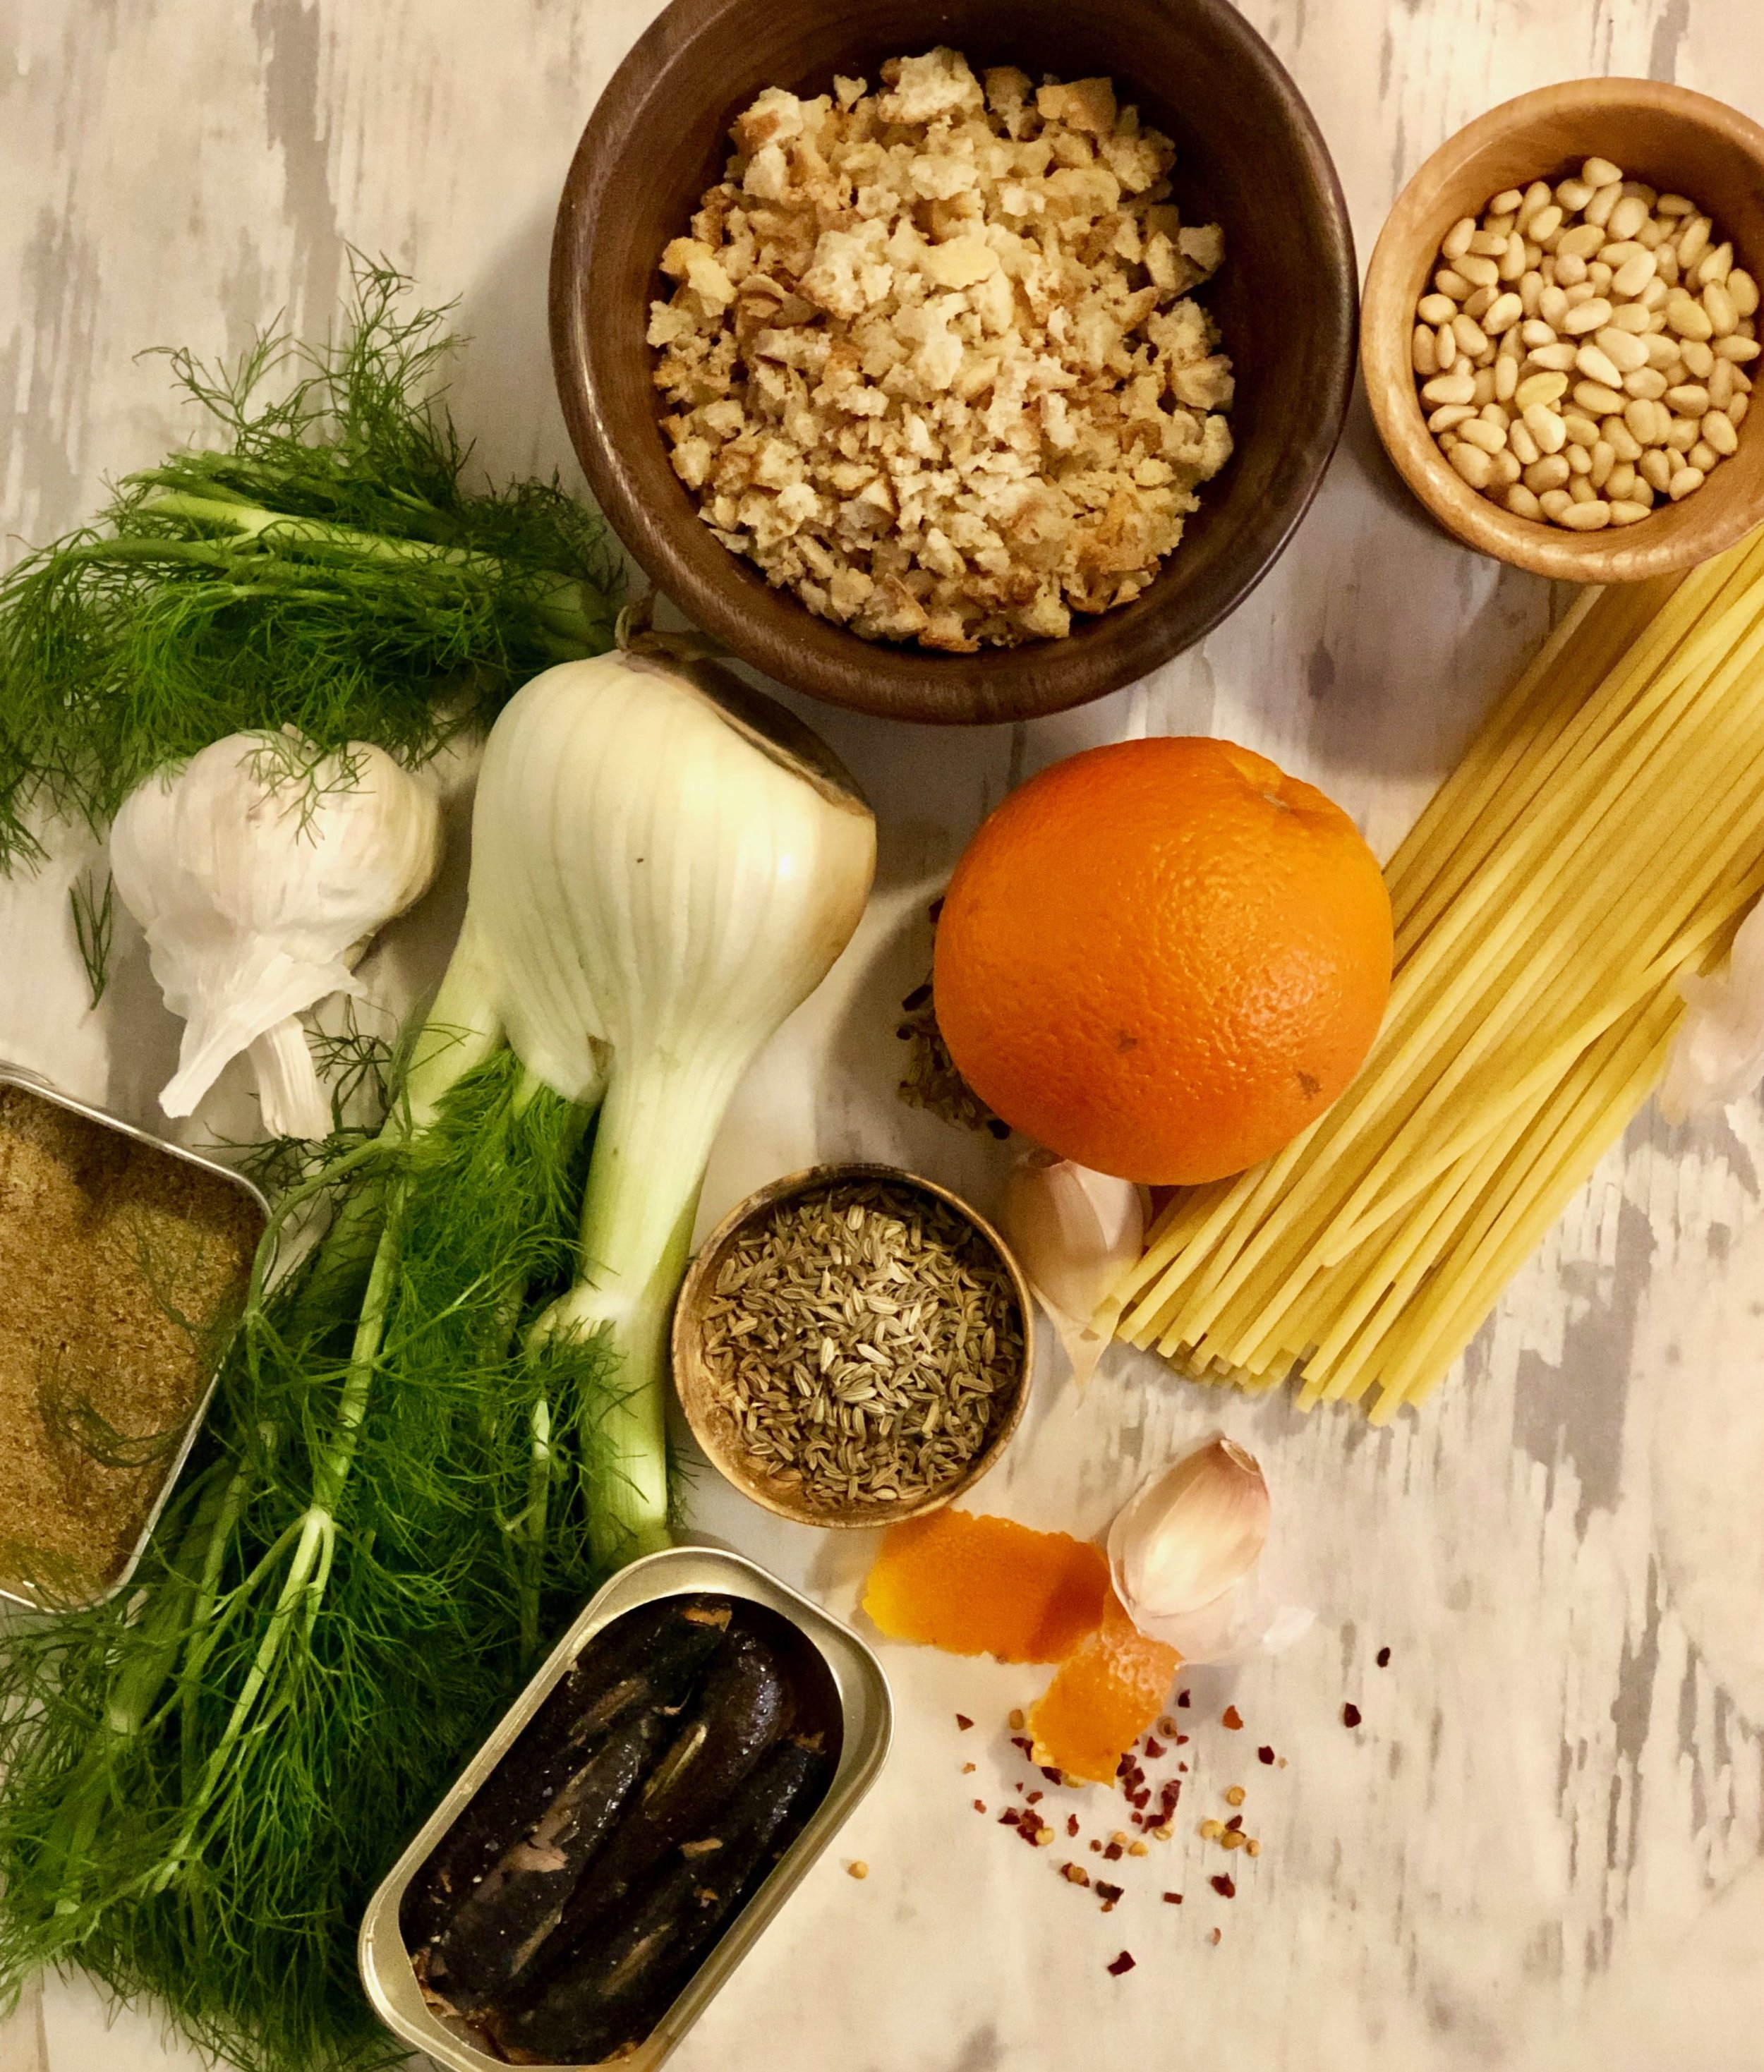 Fennel pollen, fennel fronts, fennel bulb, and fennel seeds, all on the left. Why? Because depth of flavor. The fennel pollen is buttery and aromatic. The fennel bulb is rich and like anise — a perfect marriage with sardine and anchovy. And that orange peel … I remember digging my thumbs into the flesh of a freshly picked Blood Orange in Sicily, where they're from. Sweet, lovely, juicy orange. It's the flavor of Sicily.